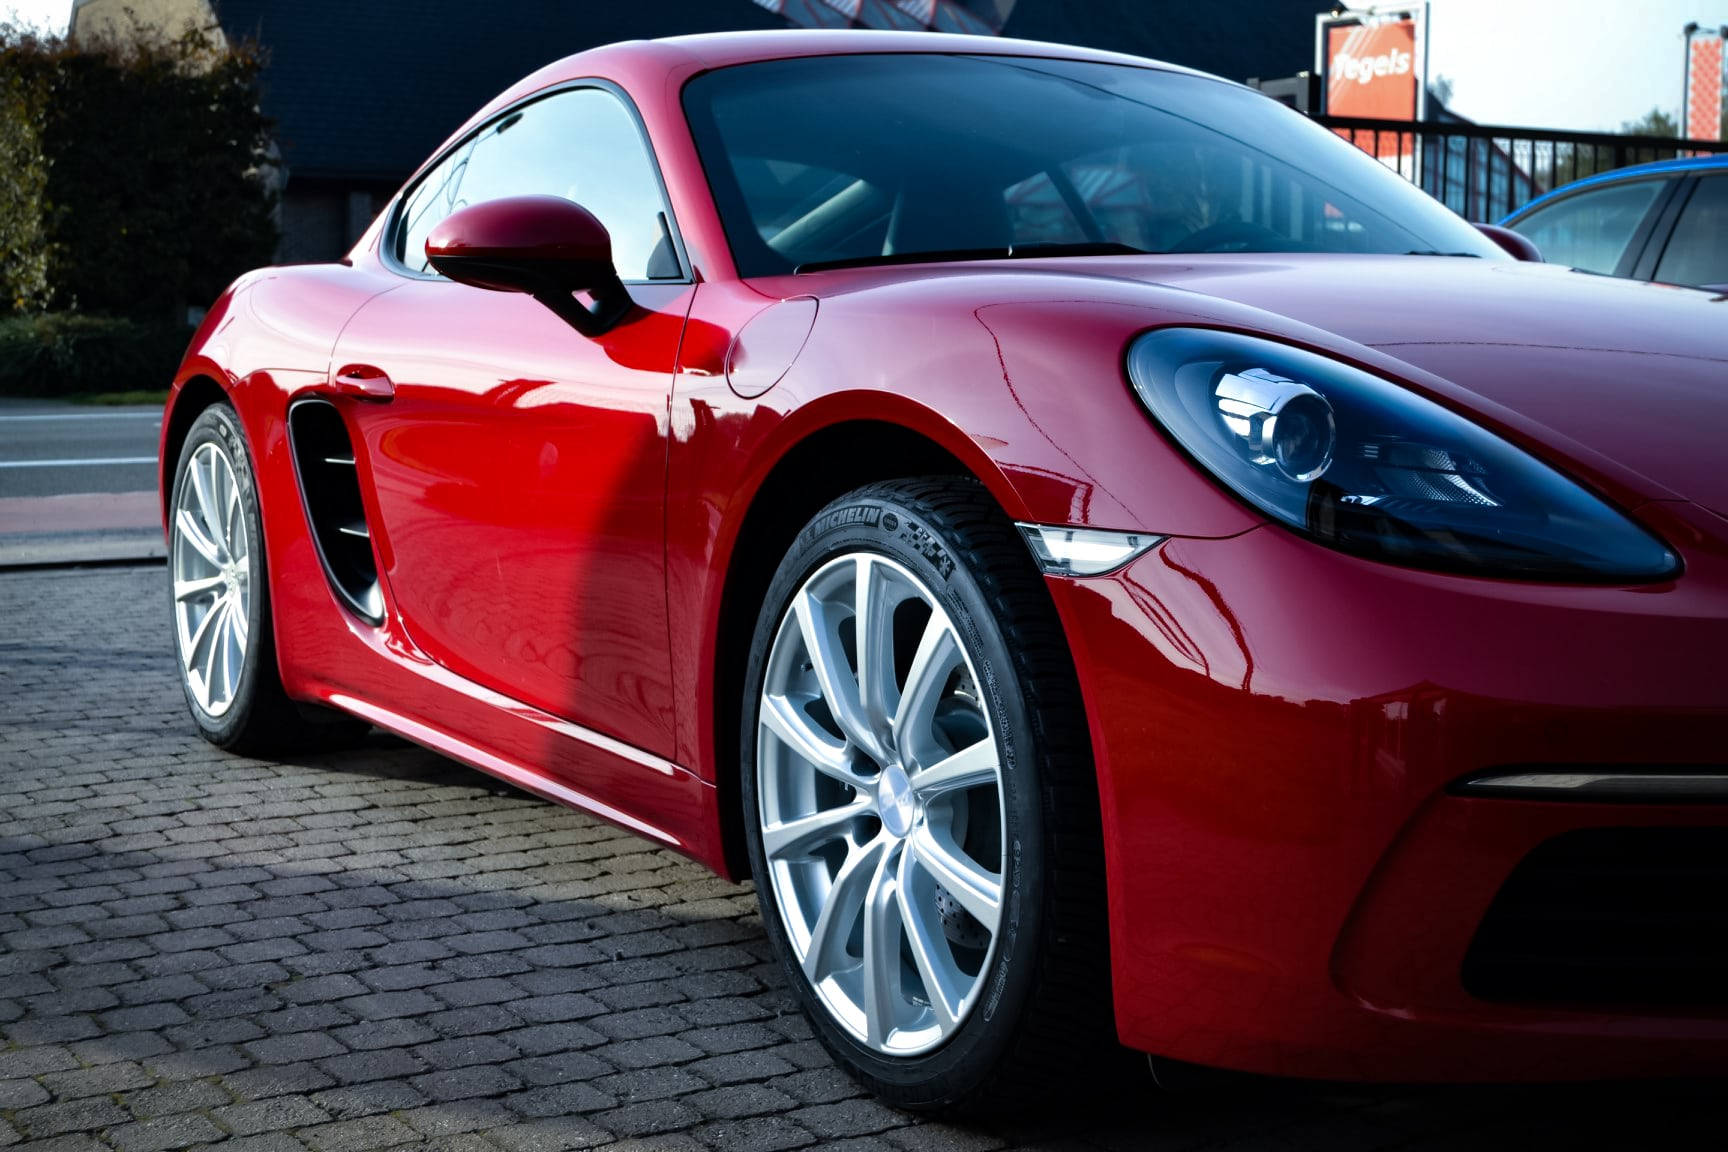 Porsche 718 Cayman Brock B32 KS